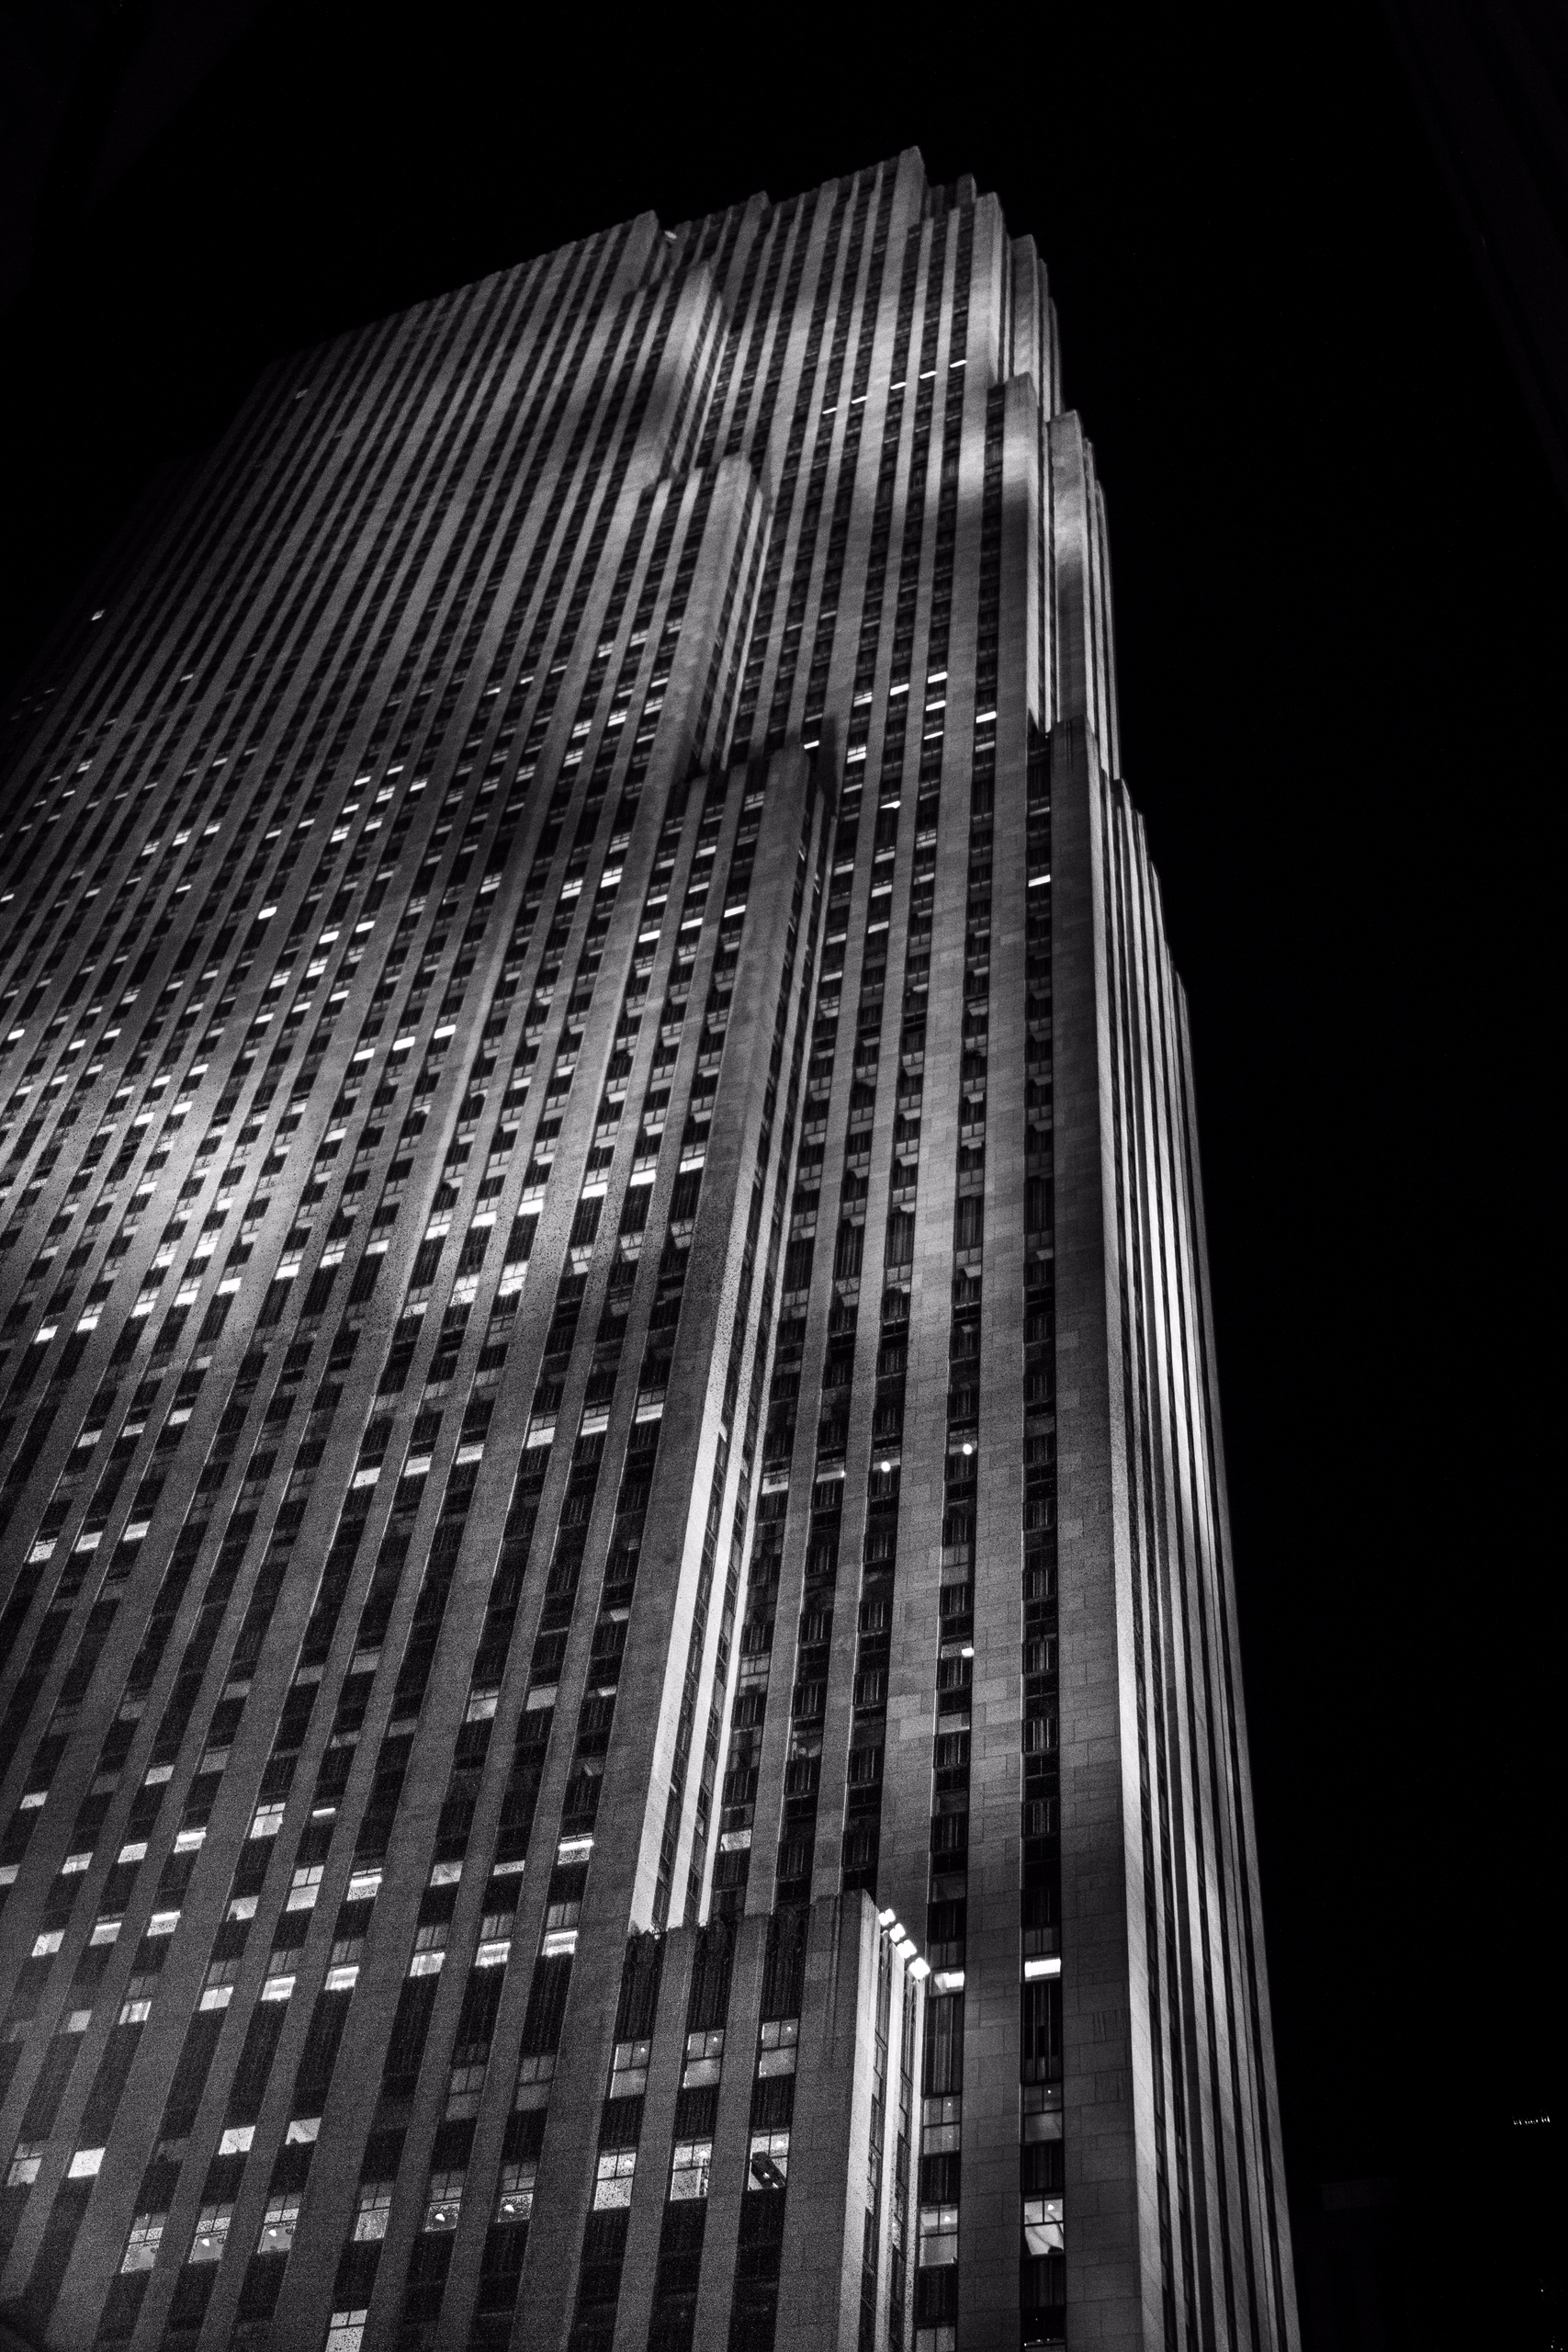 Rockefeller Tower. photograph 4 - vincentwinther | ello